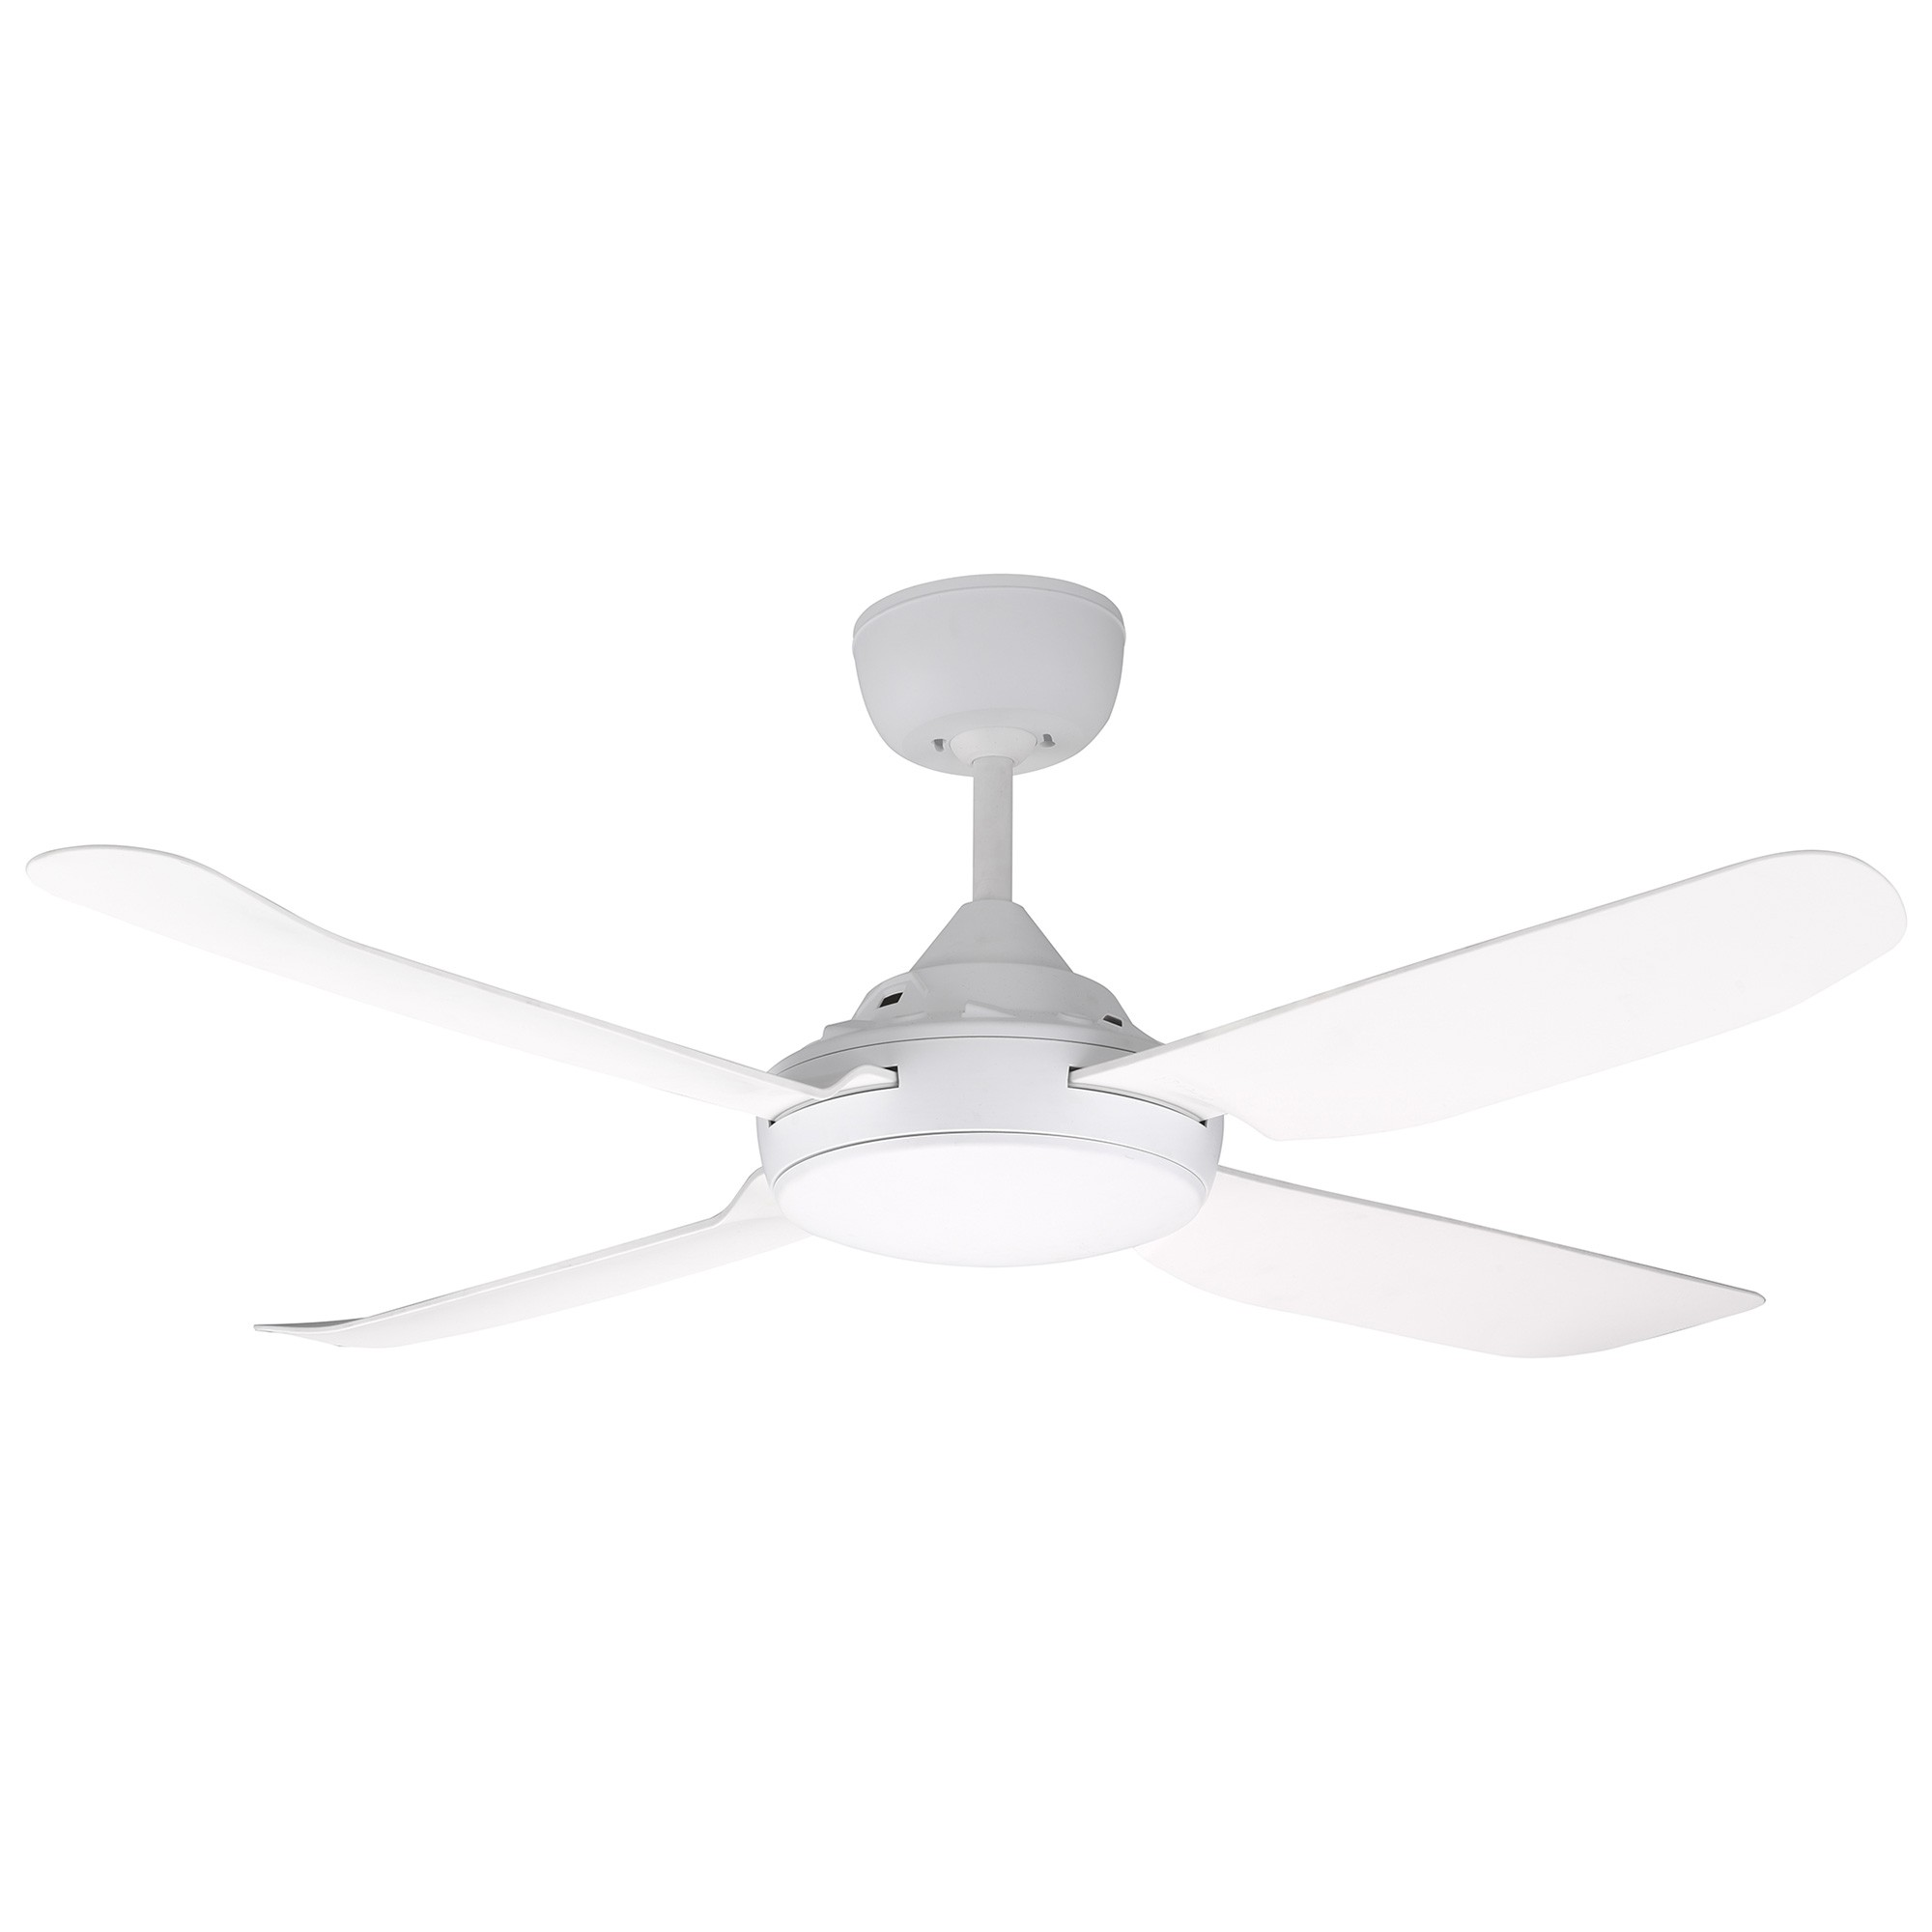 Ventair Spinika Commercial Grade Indoor / Outdoor Ceiling Fan, 122cm/48